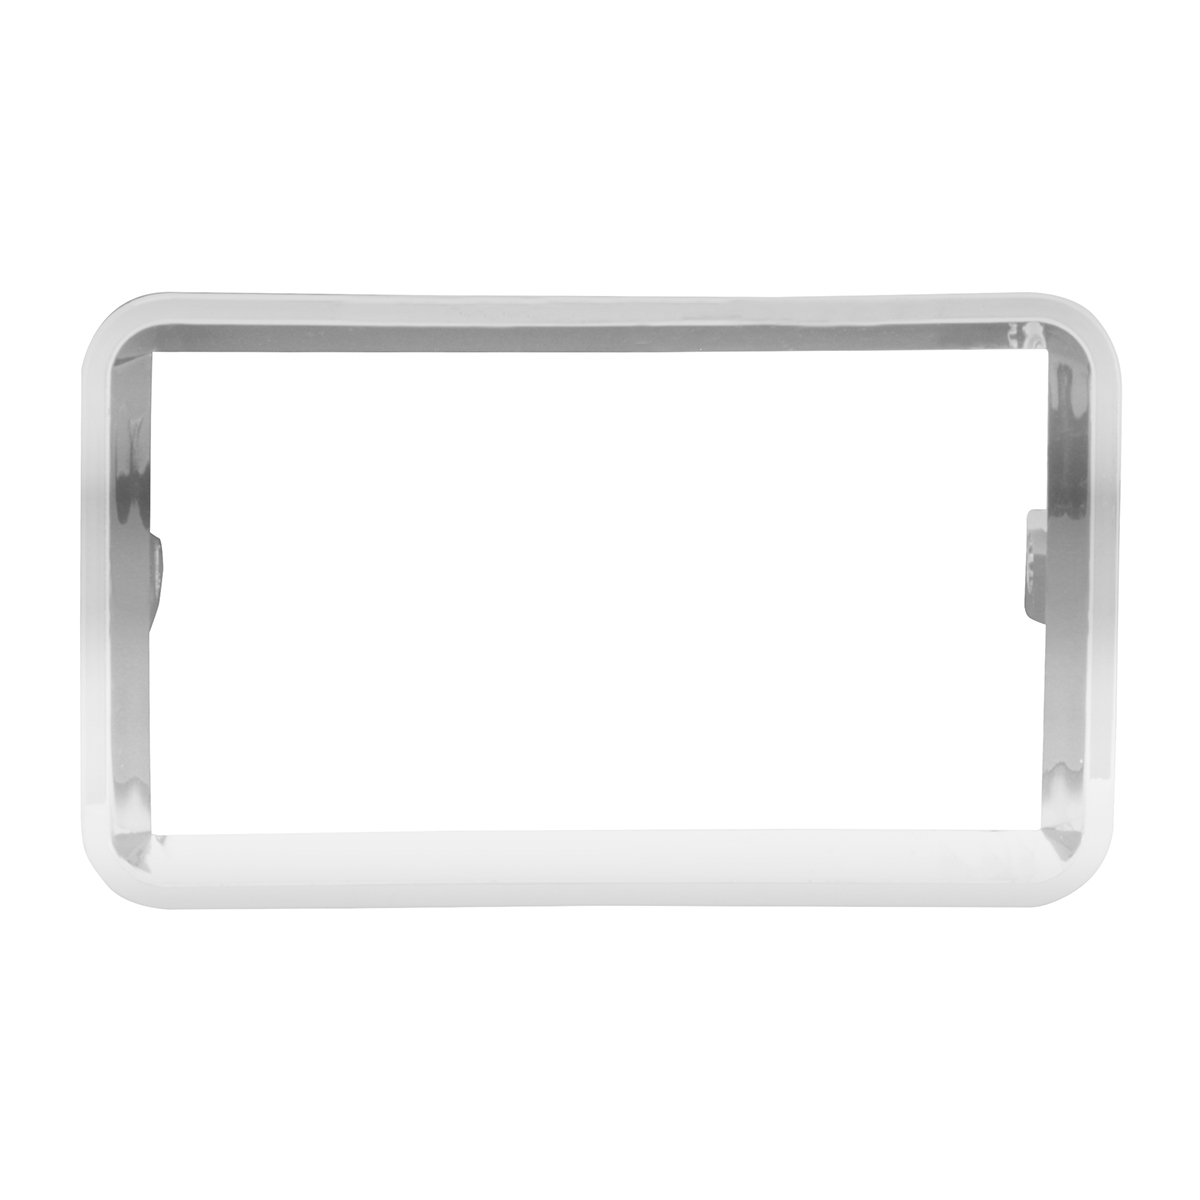 68424 A/C Vent Frame Cover for Freightliner Classic/FLDs